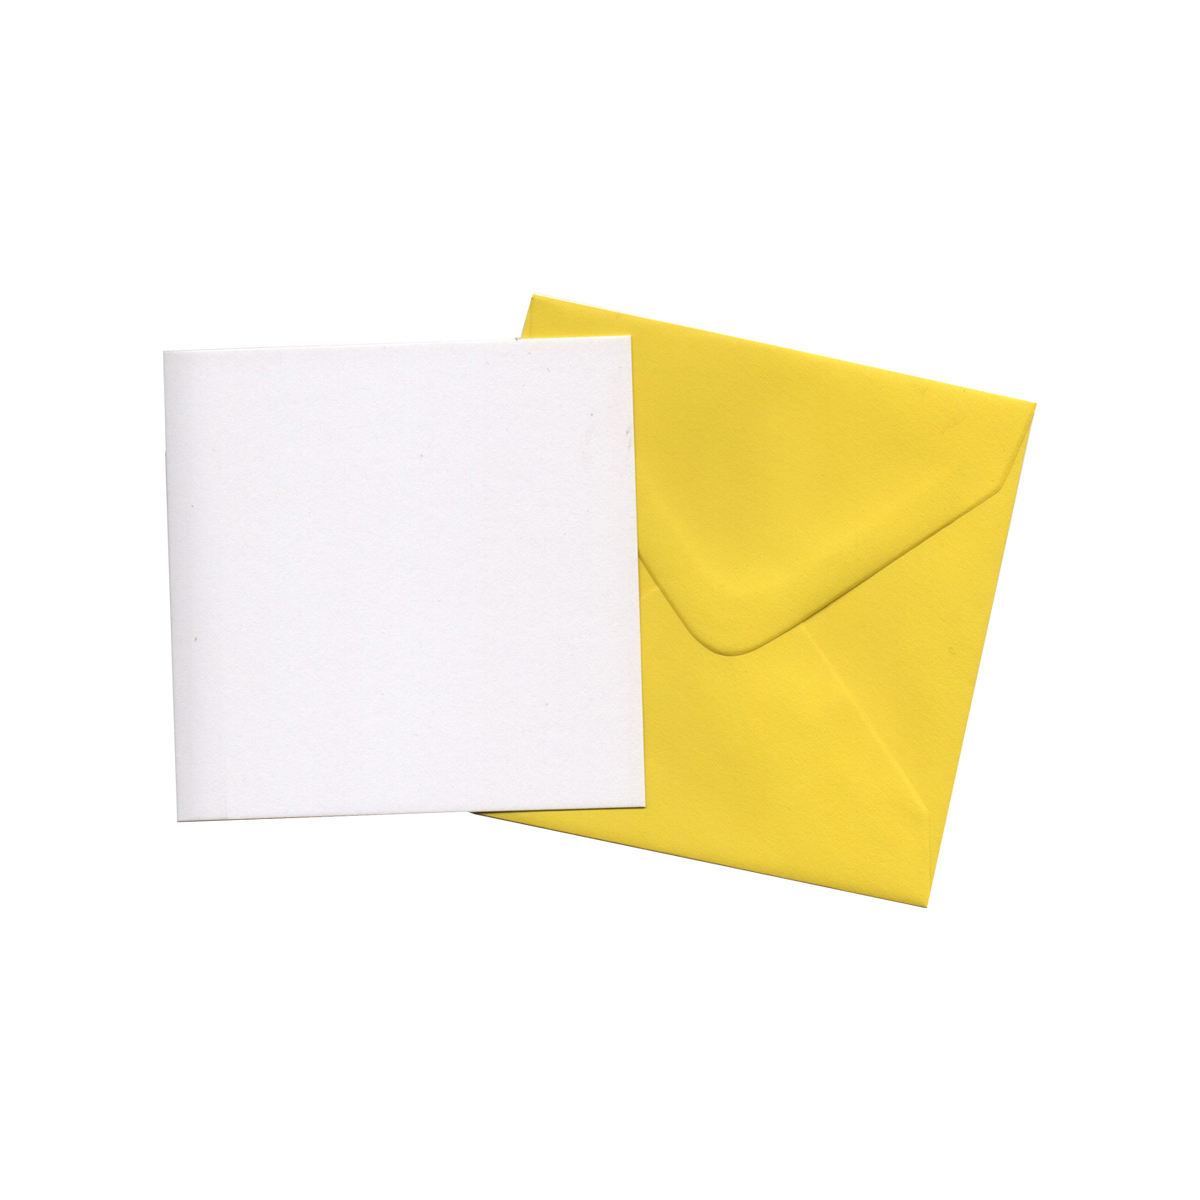 100MM SQUARE WHITE CARD BLANKS WITH YELLOW ENVELOPES (PACK OF 5)